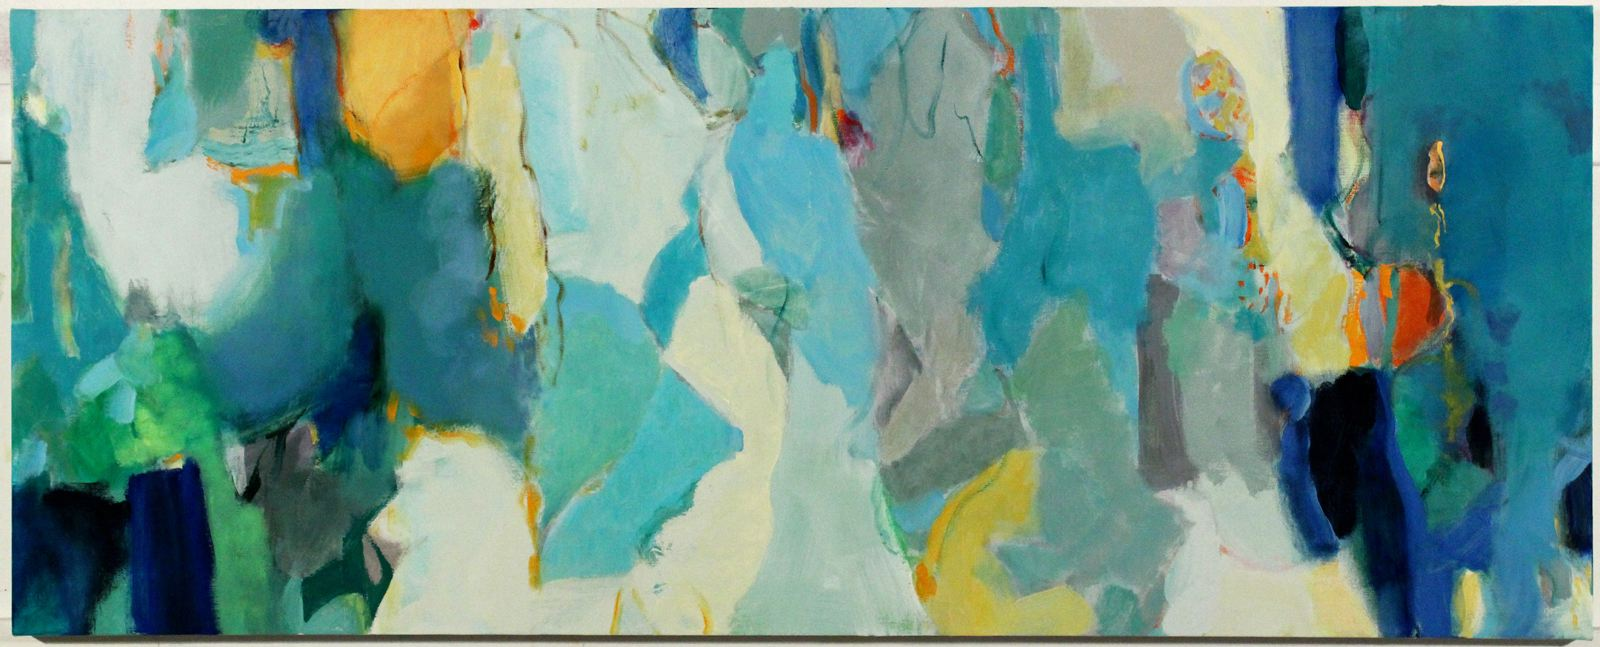 Terrell James   Confidant , 2012 Oil and acrylic on canvas 27 x 68 inches 68.6 x 172.7 cm